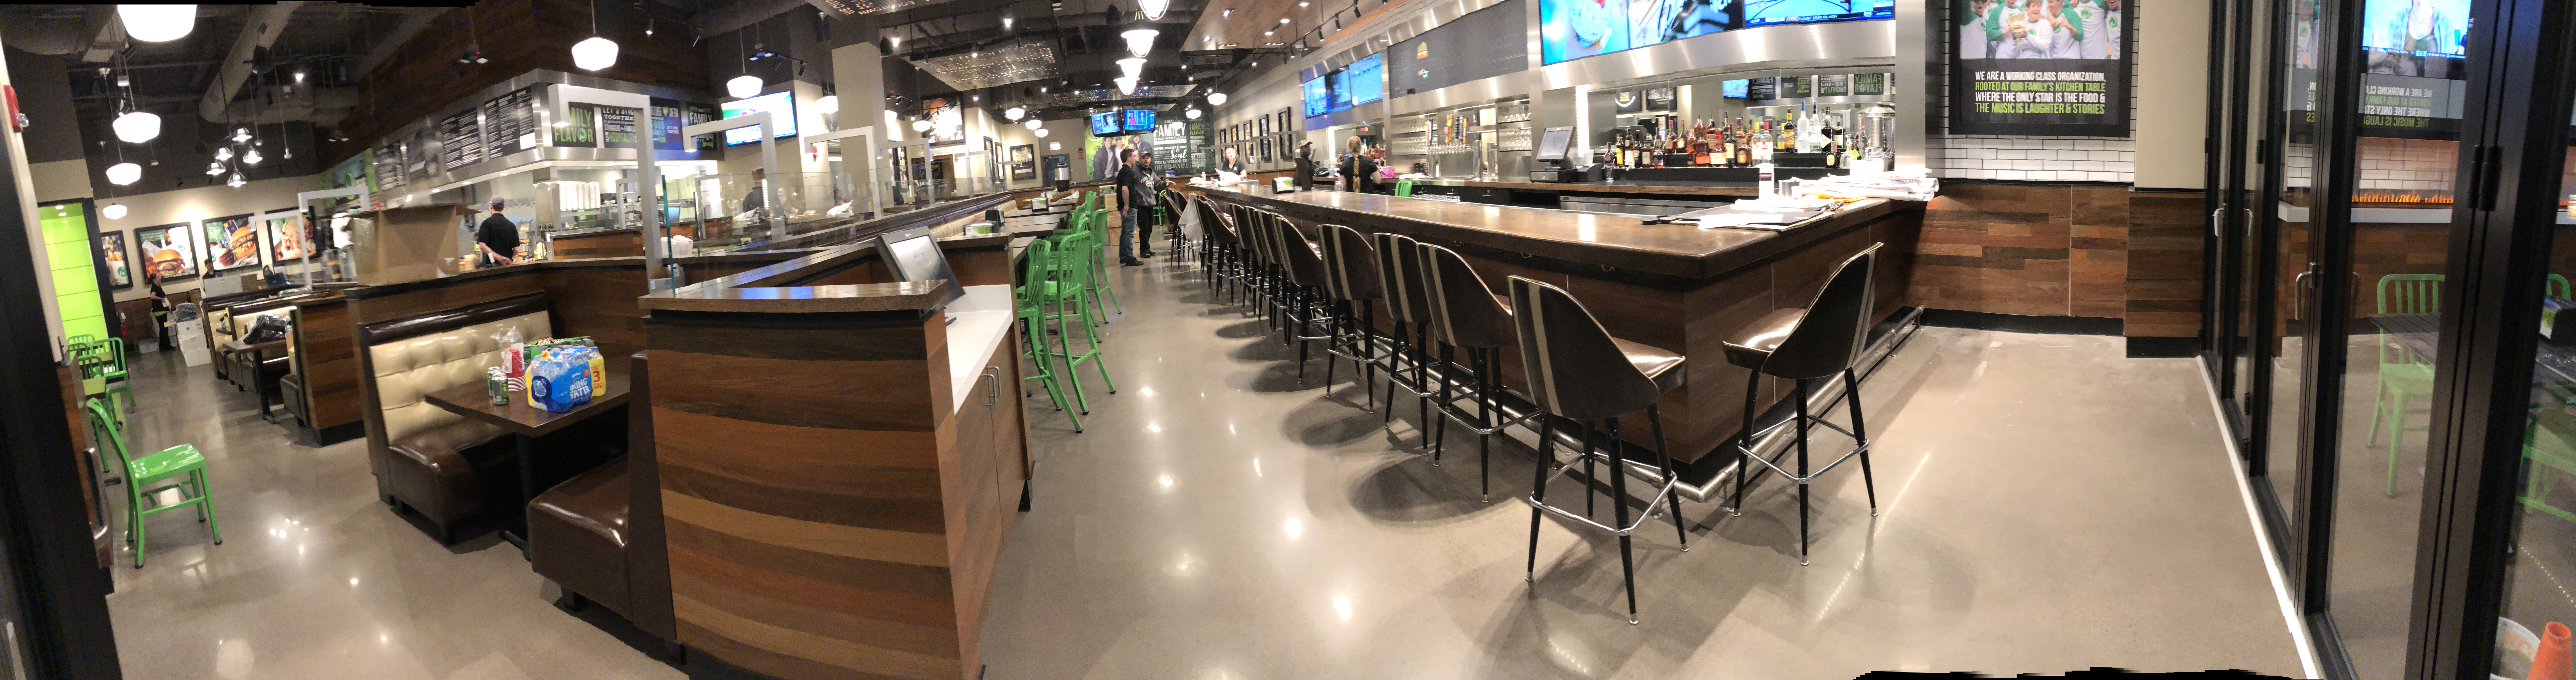 Wahlburgers CCC Job - after